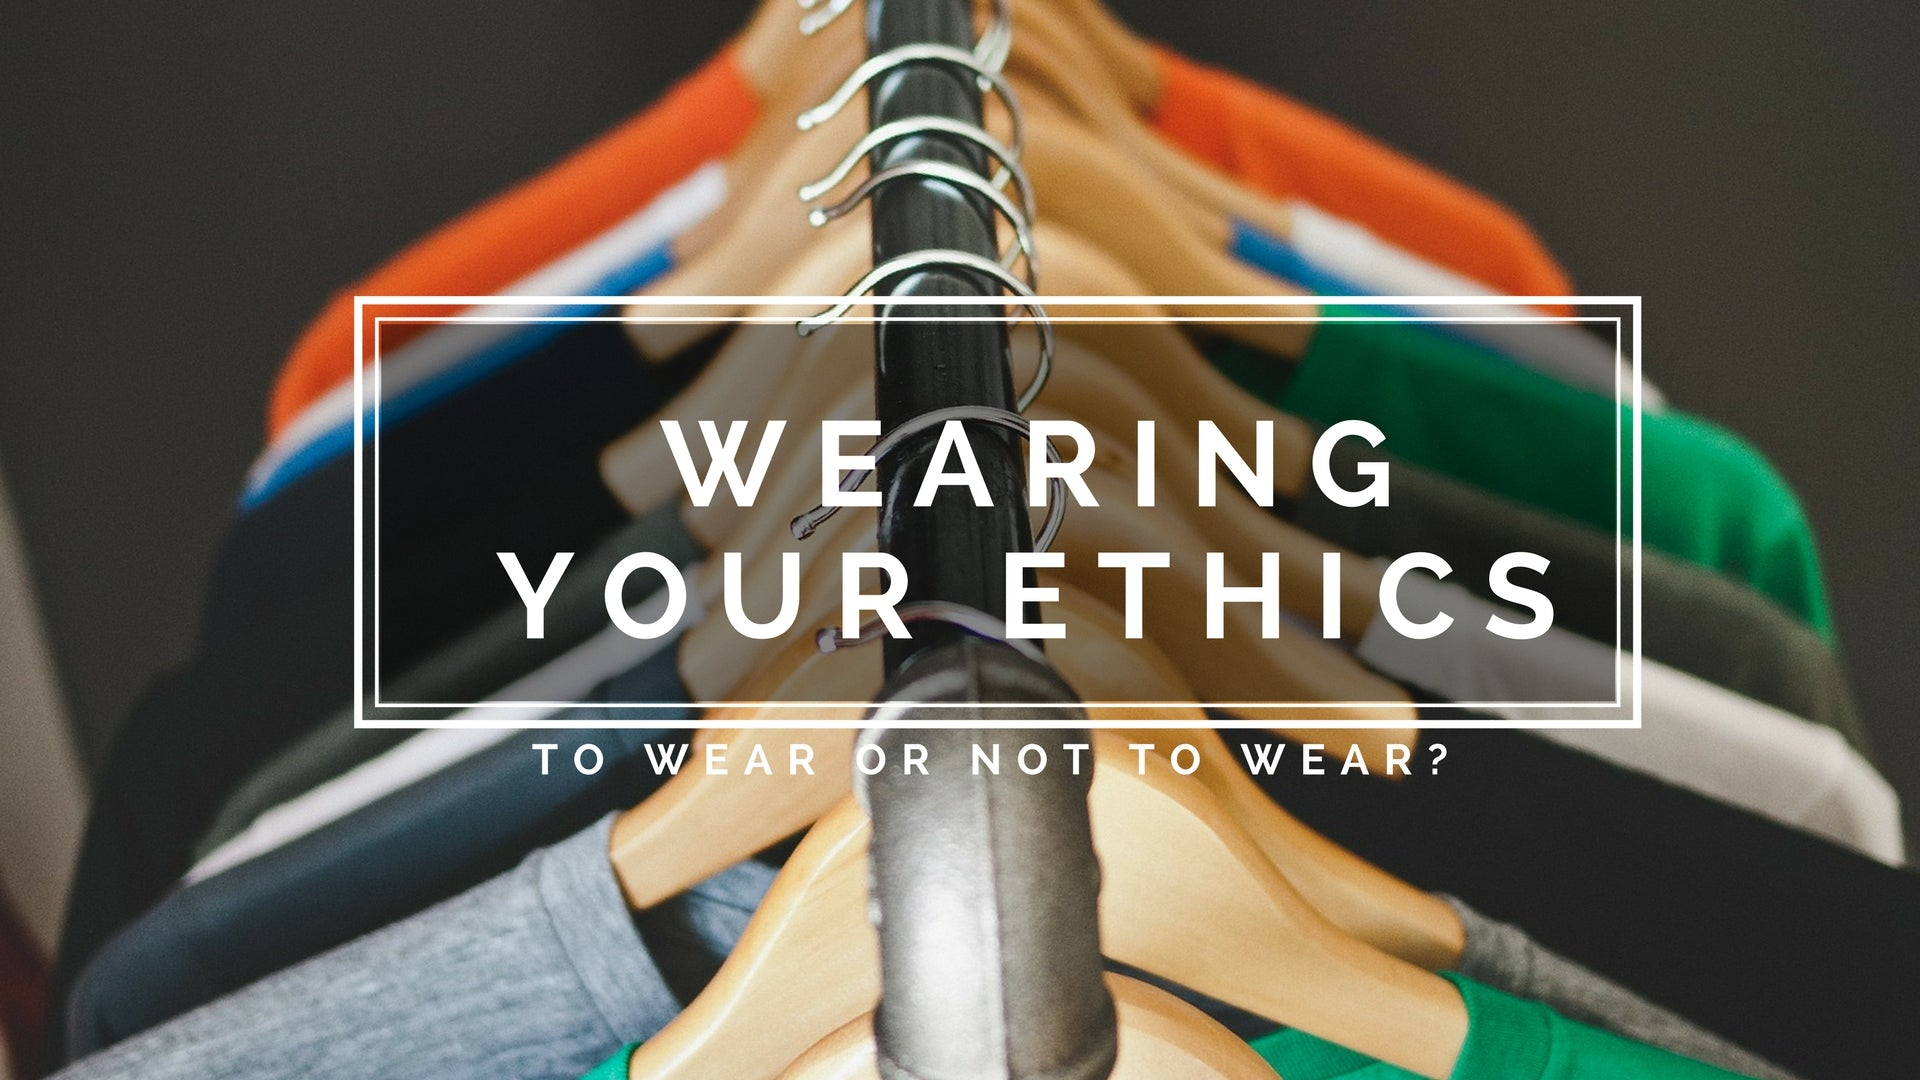 Wearing your ethics - to wear or not to wear?